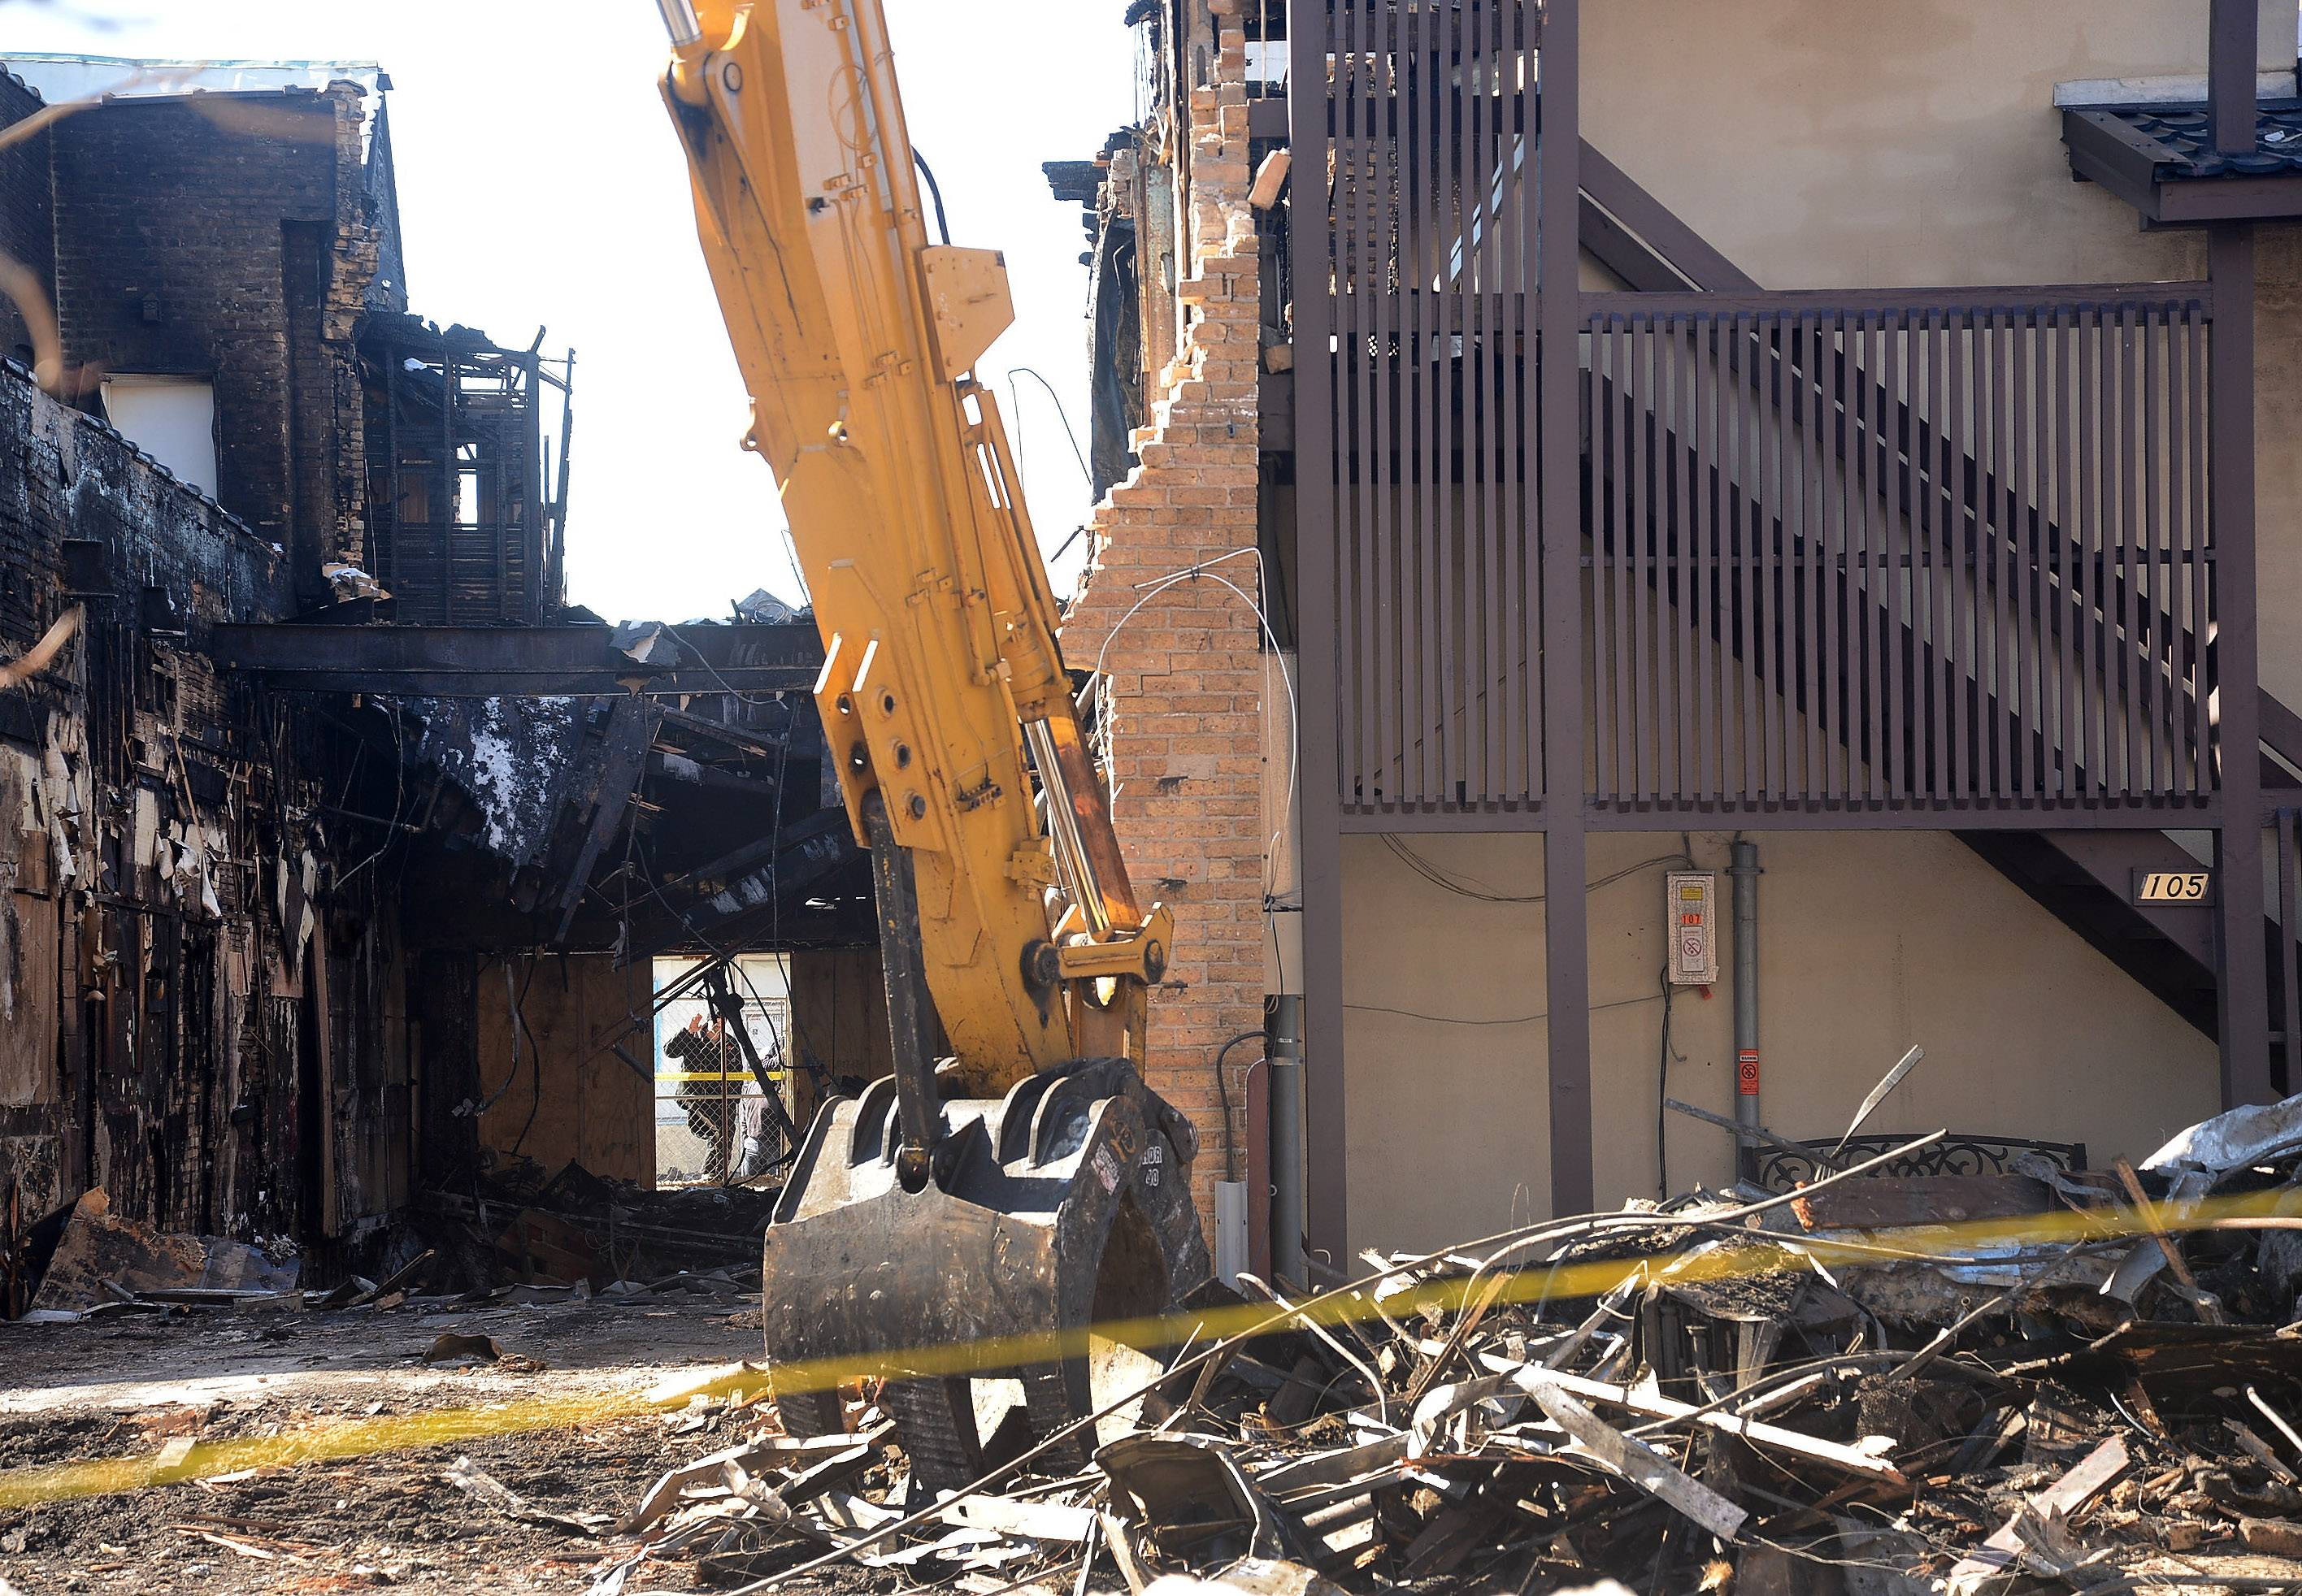 Demolition of the fire-ravaged historic building at 105 S. Main St. in downtown Mount Prospect continues this week. Village officials say what happens next with the site is in the hands of its owner and insurance adjusters.